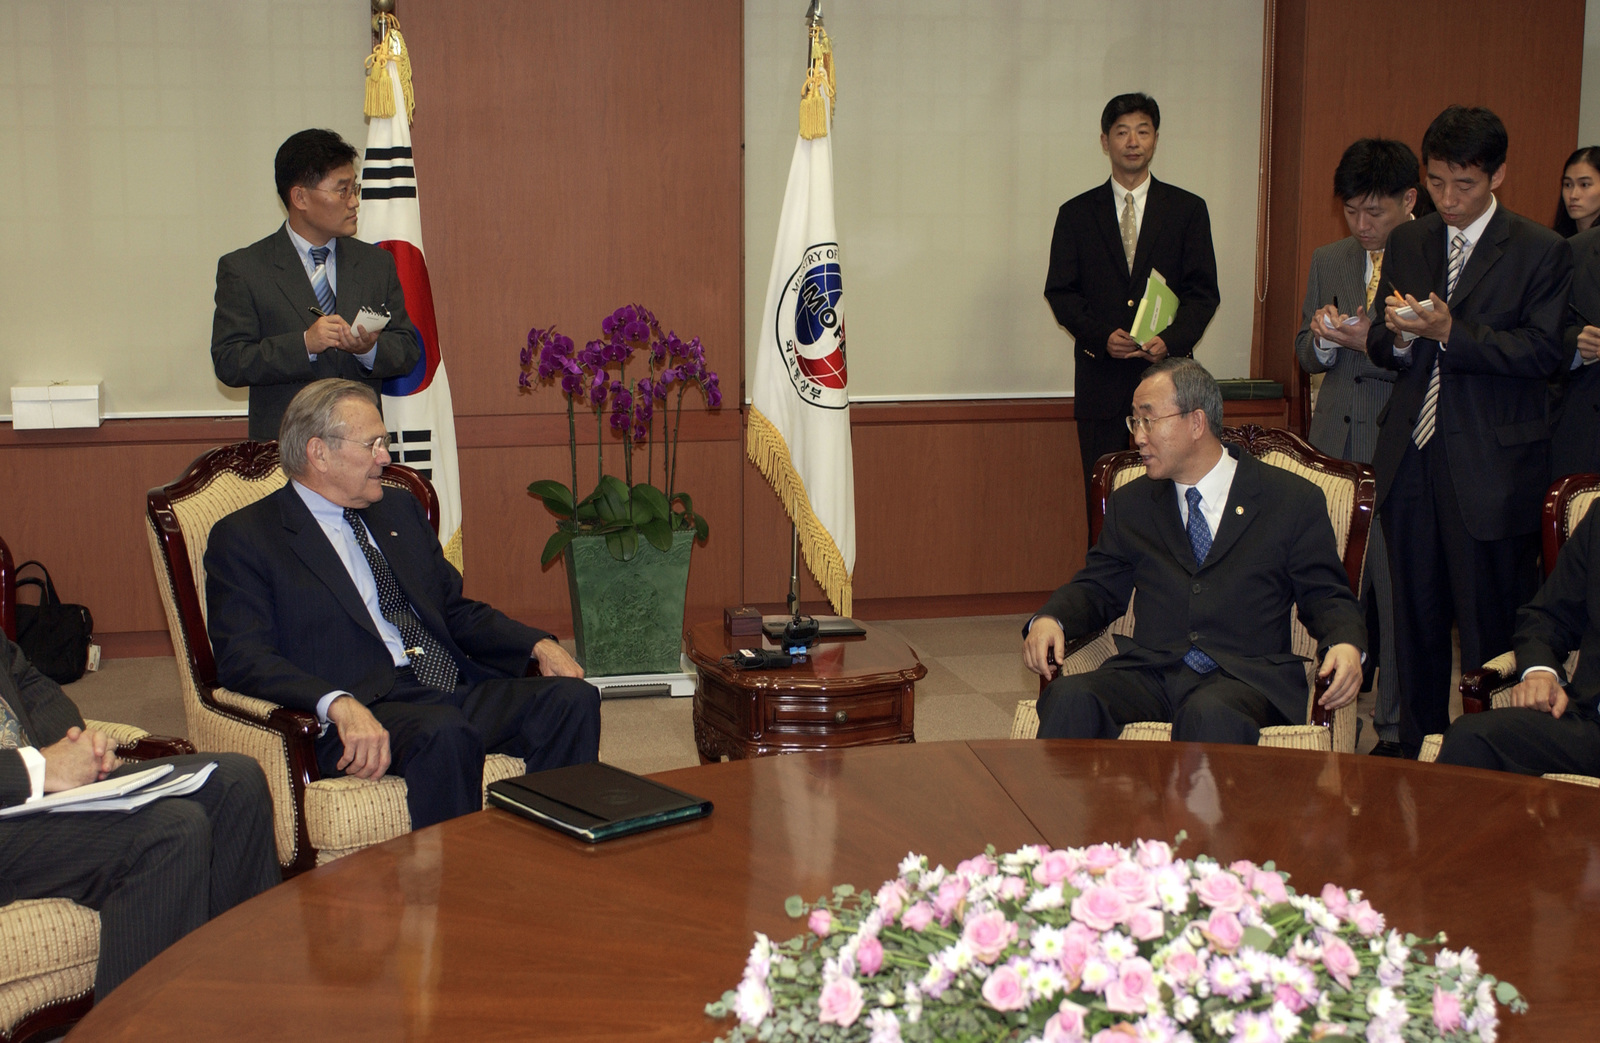 The Honorable Donald H. Rumsfeld (seated fourth from left), U.S. Secretary of Defense, speaks with the Honorable Ban Ki Moon (seated third from right), Minister of Foreign Affairs for the Republic of Korea, while in Seoul, Seoul National Capital Area, Republic of Korea, on Oct. 21, 2005. Secretary Rumsfeld is visiting Korea to meet with the Honorable Yoon Kwang Ung, Minister of Defense for the Republic of Korea and to conduct the 37th United States and Republic of Korea Security Consultative Meeting to discuss defense policy issues and the future of U.S. and Korean alliance. (DoD photo by MASTER SGT. James M. Bowman) (Released)